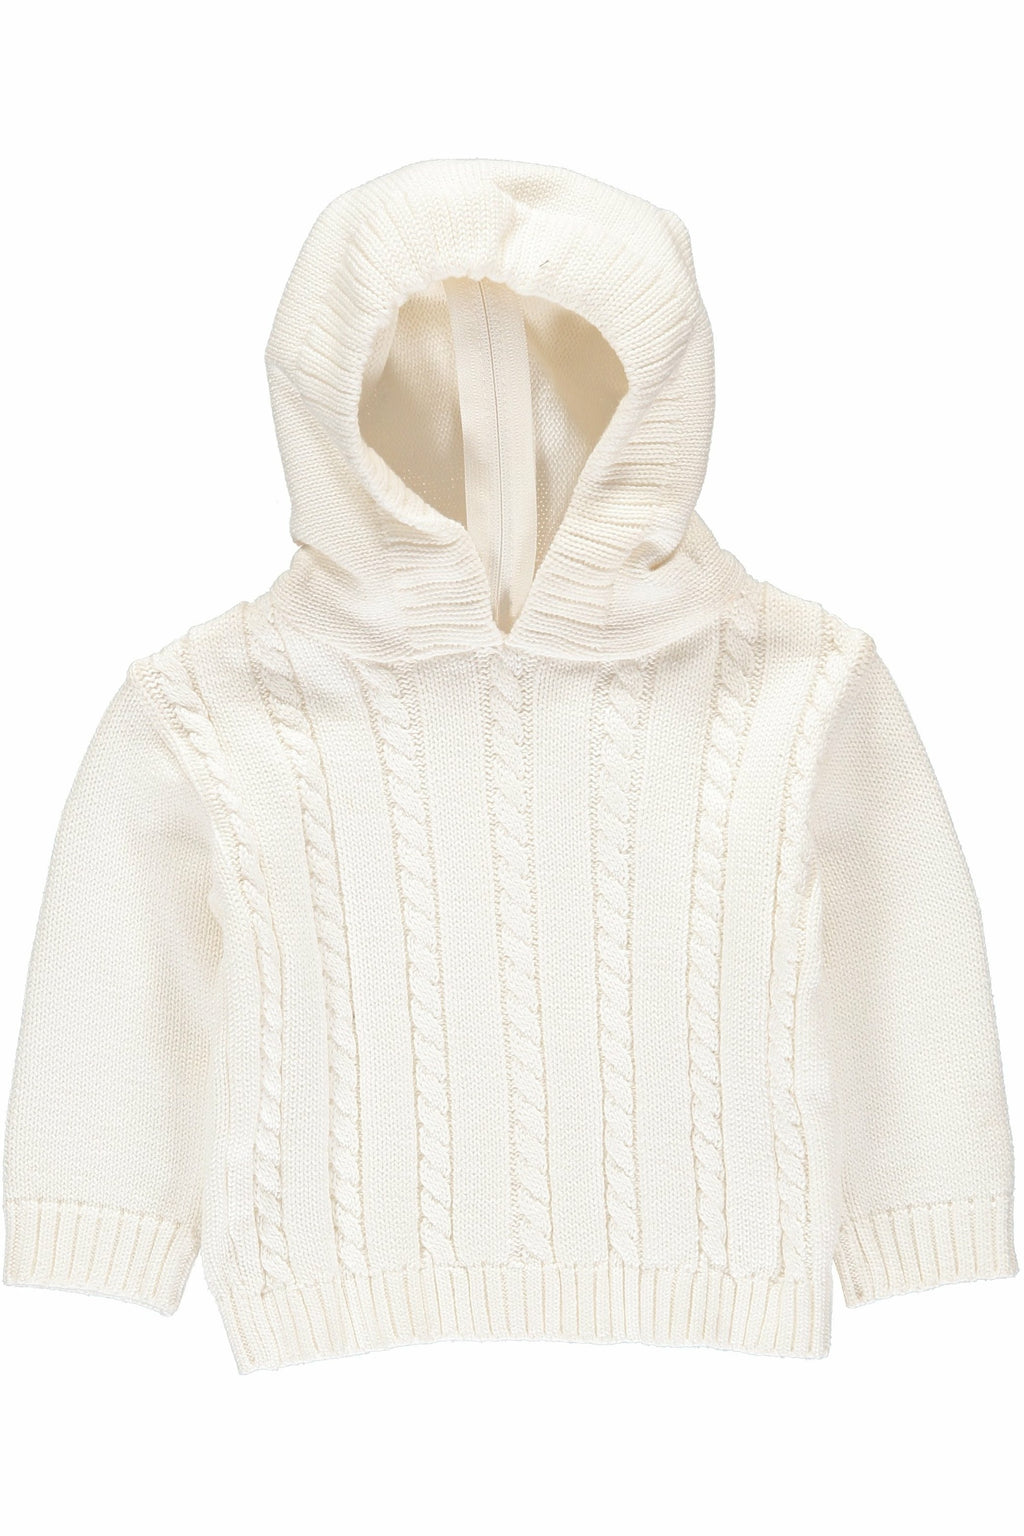 White Cable Zip Back Sweater